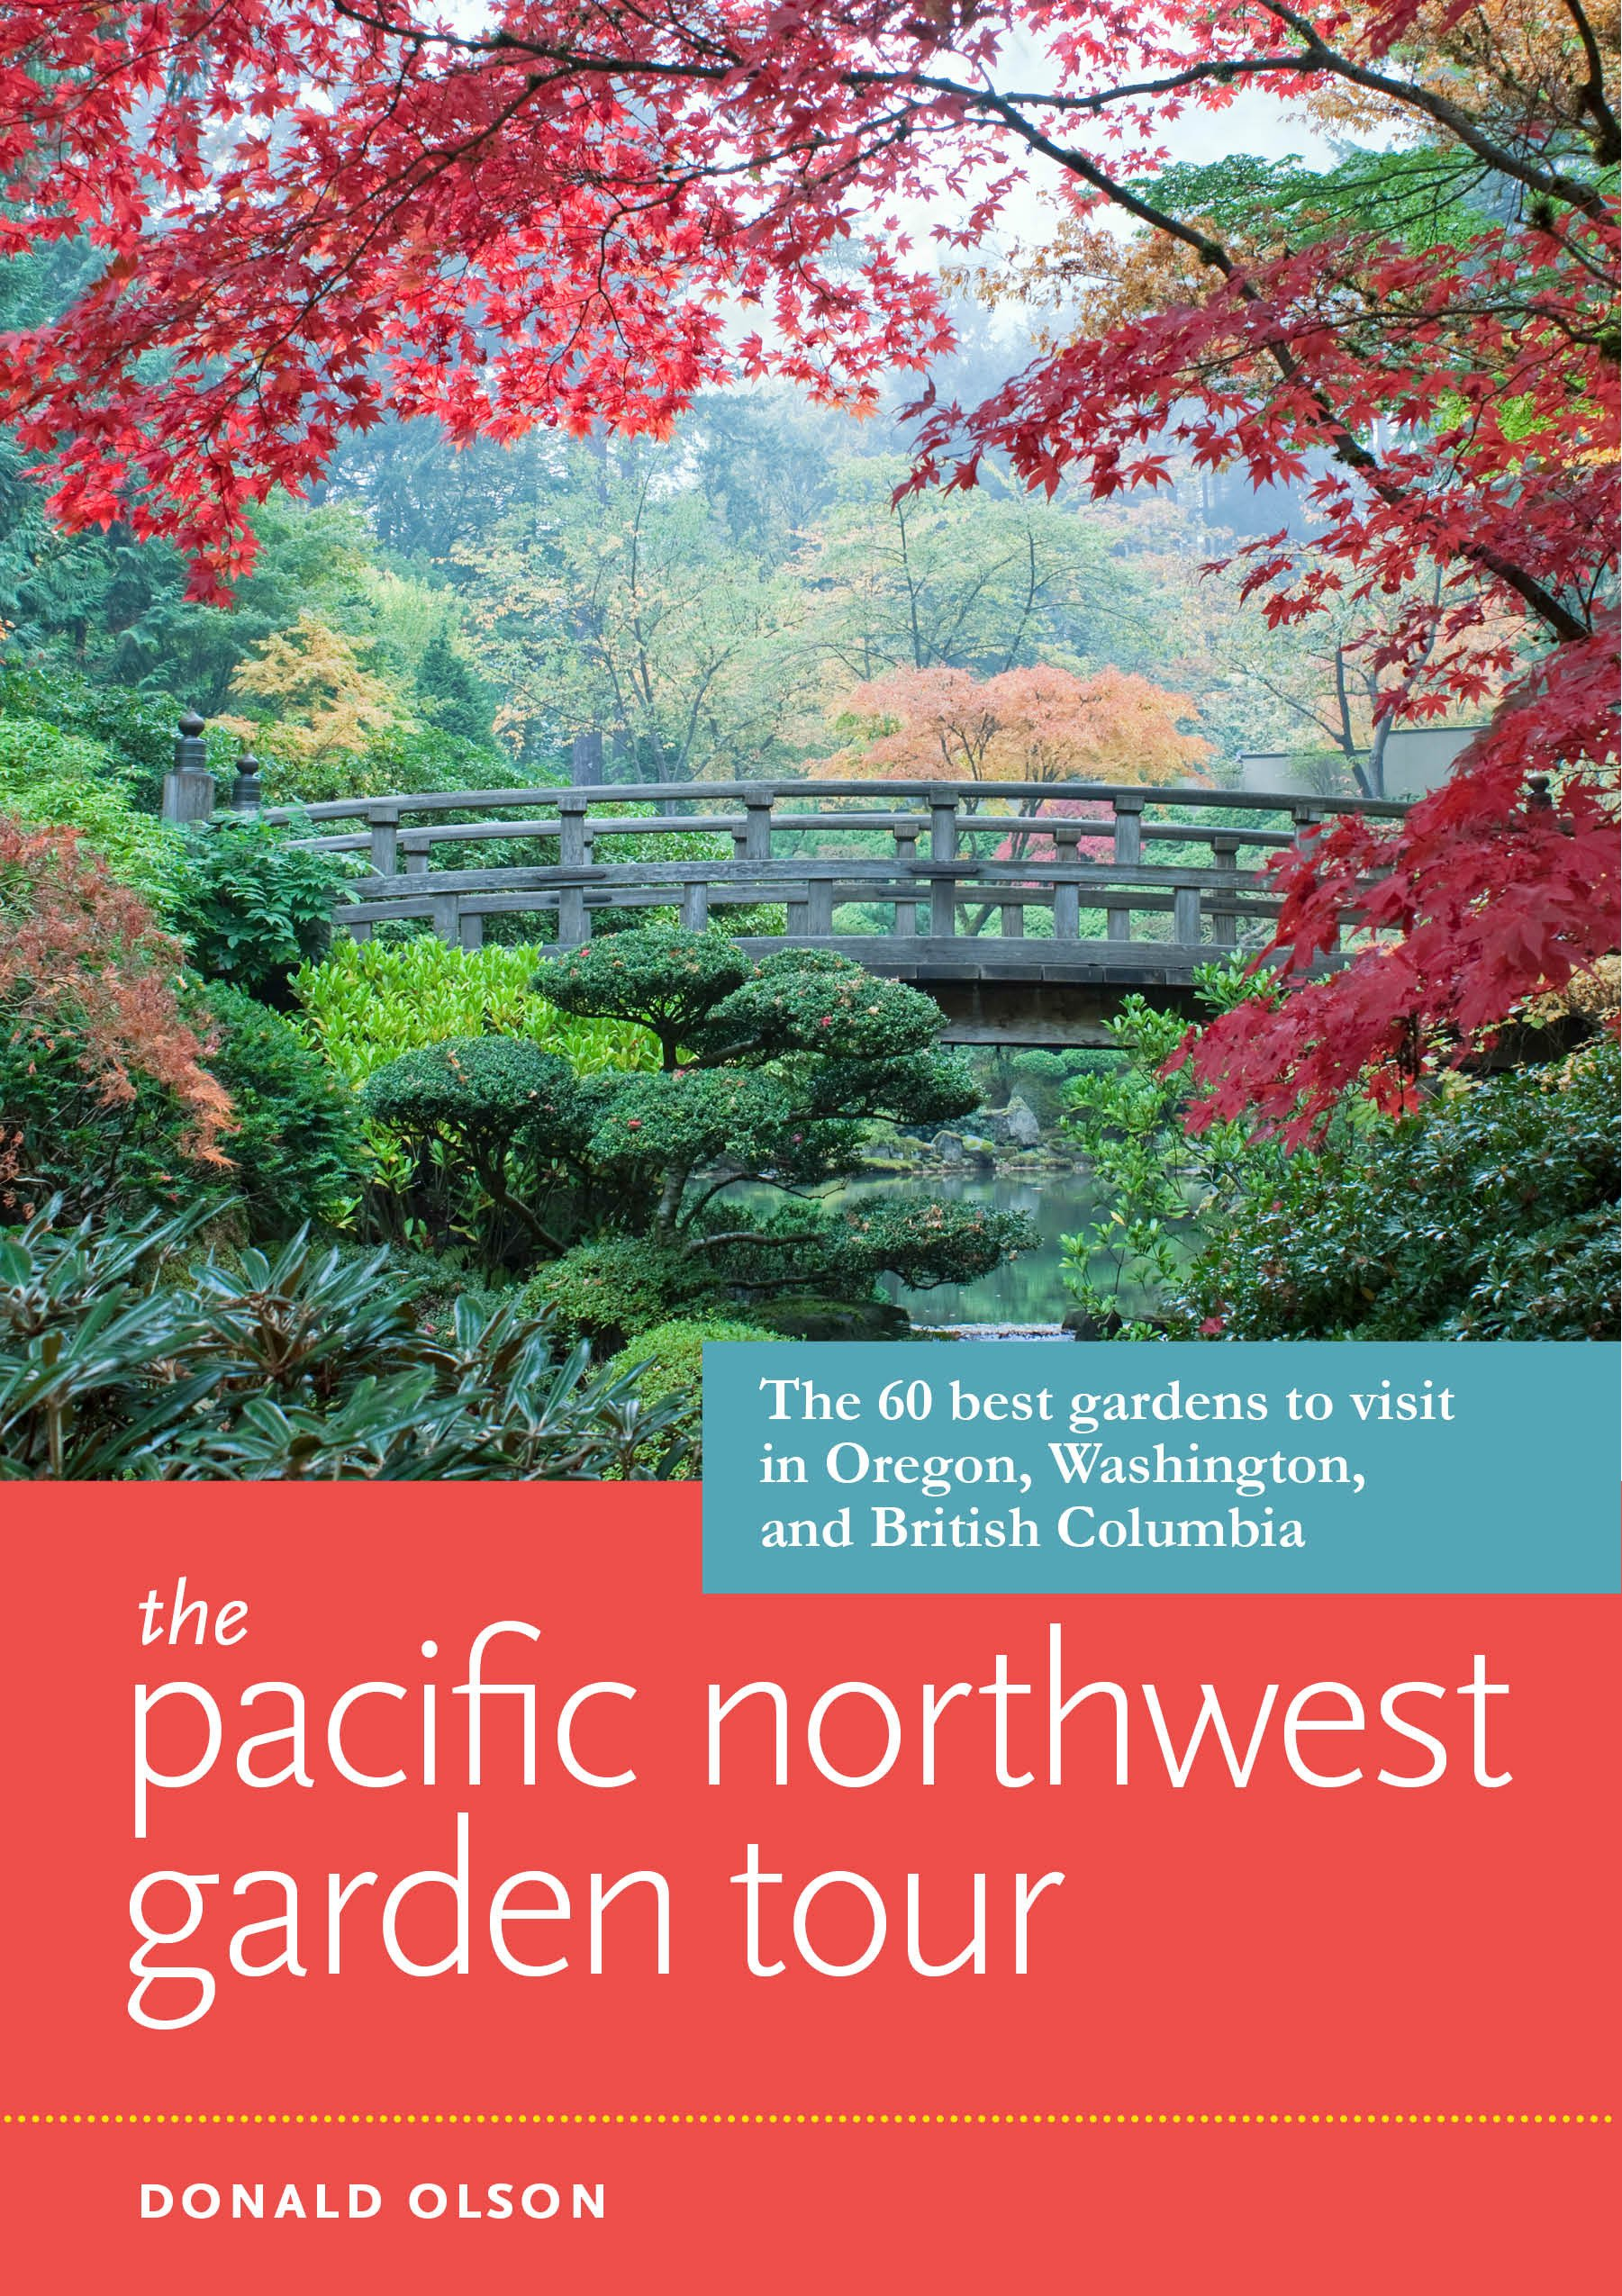 The Pacific Northwest Garden Tour: The 60 Best Gardens To Visit In Oregon,  Washington, And British Columbia: Donald Olson: 9781604694512: Amazon.com:  Books